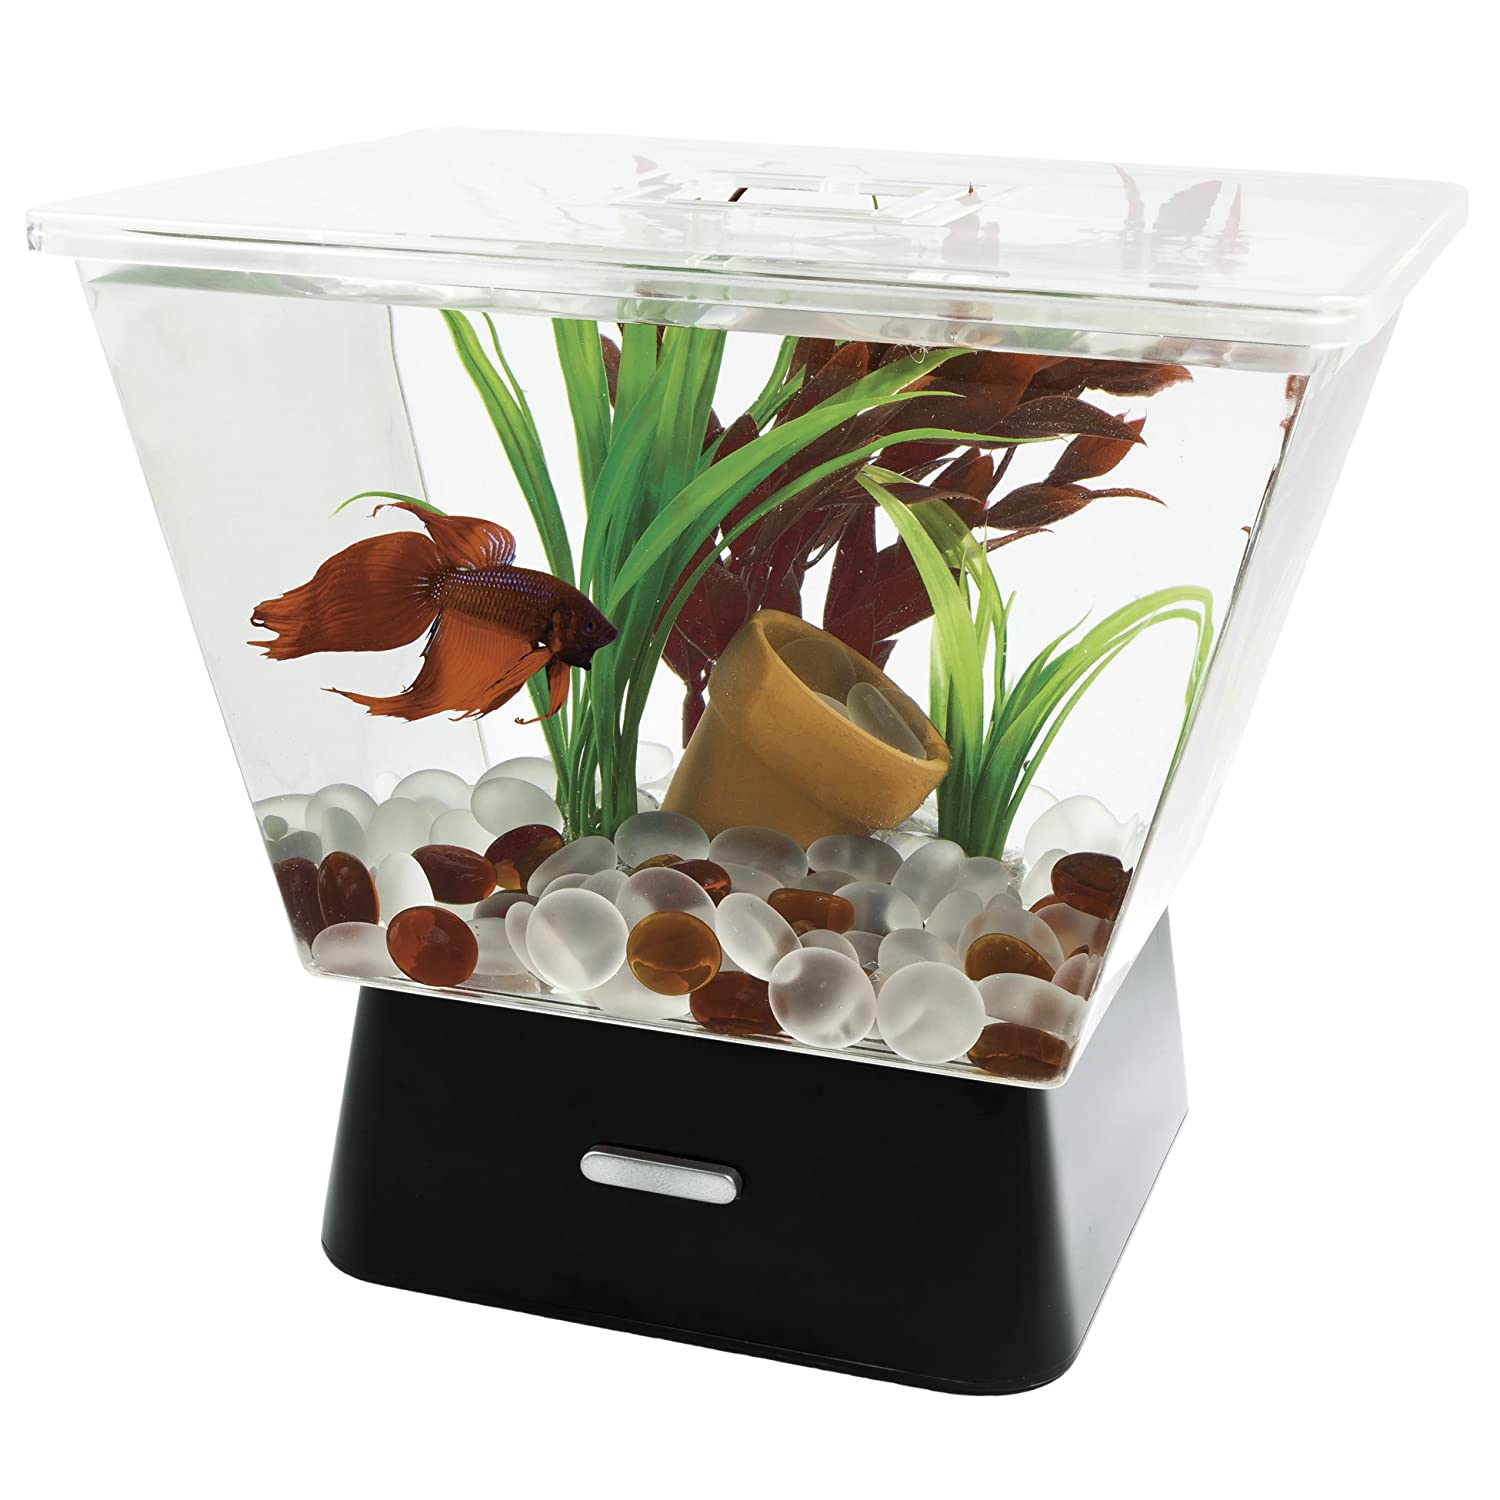 Tetra LED Betta Tank 1 Gallon Amazon Pet Supplies